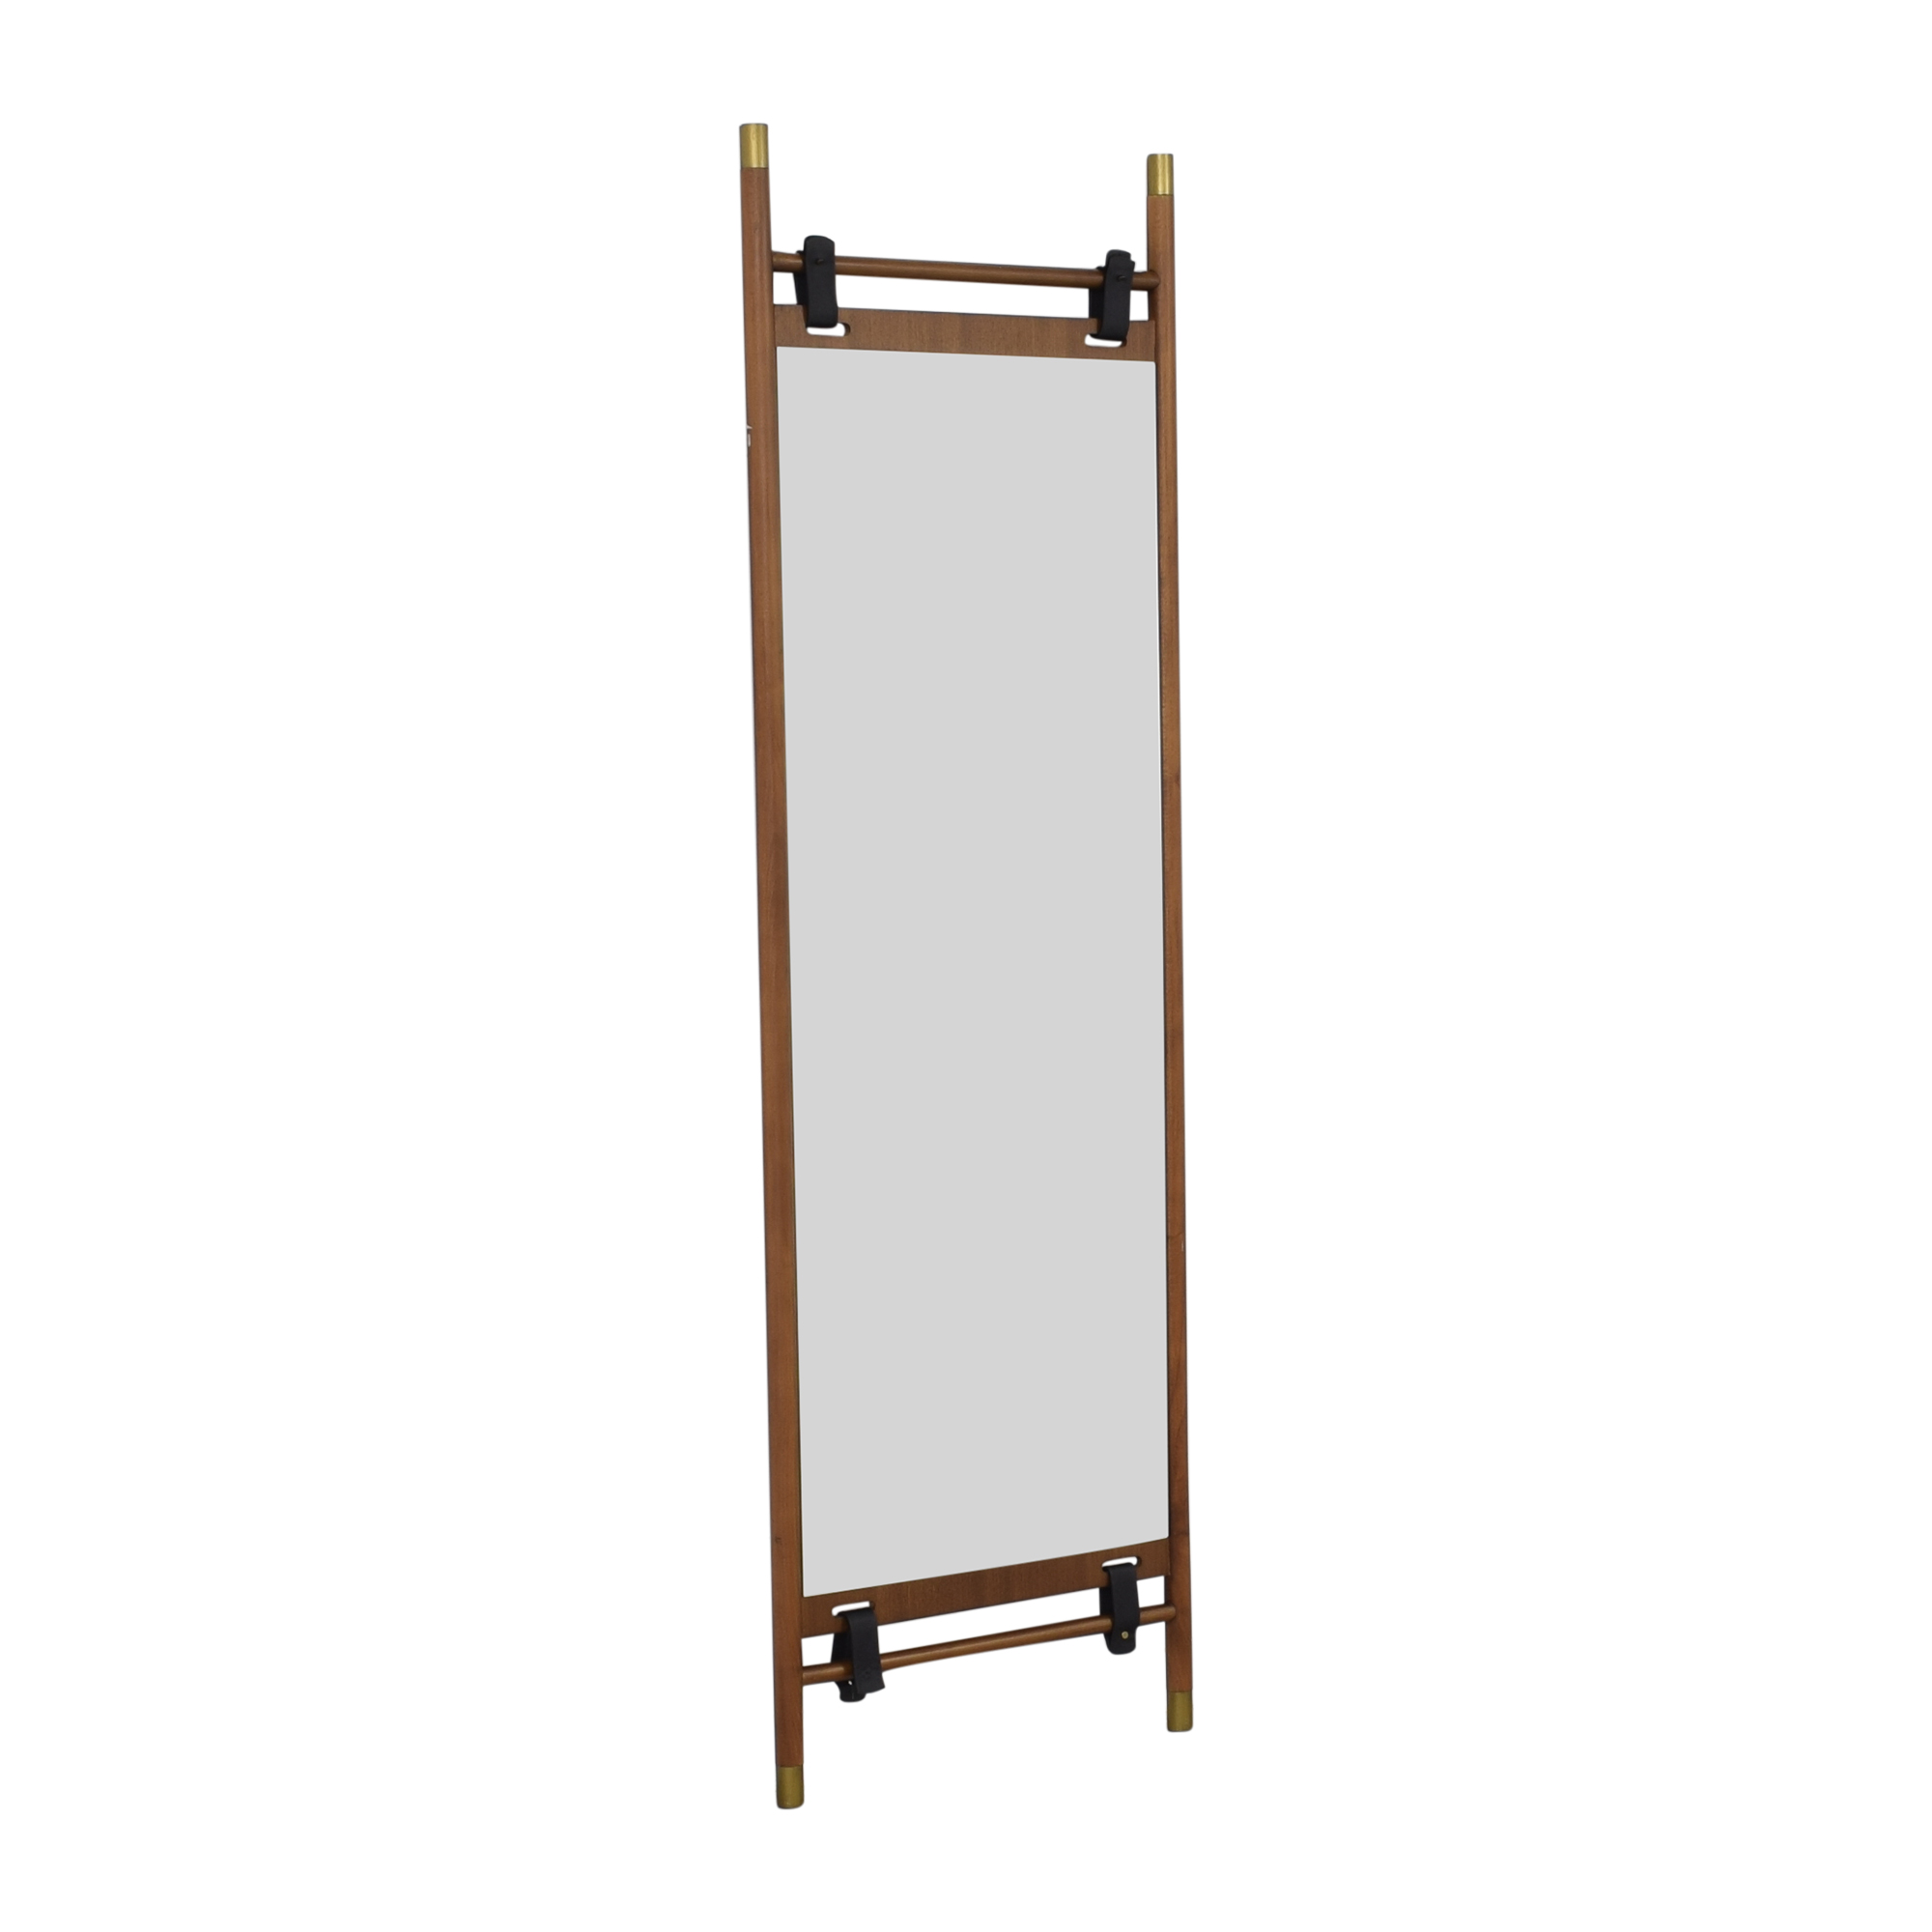 Article Article Beau Mirror on sale